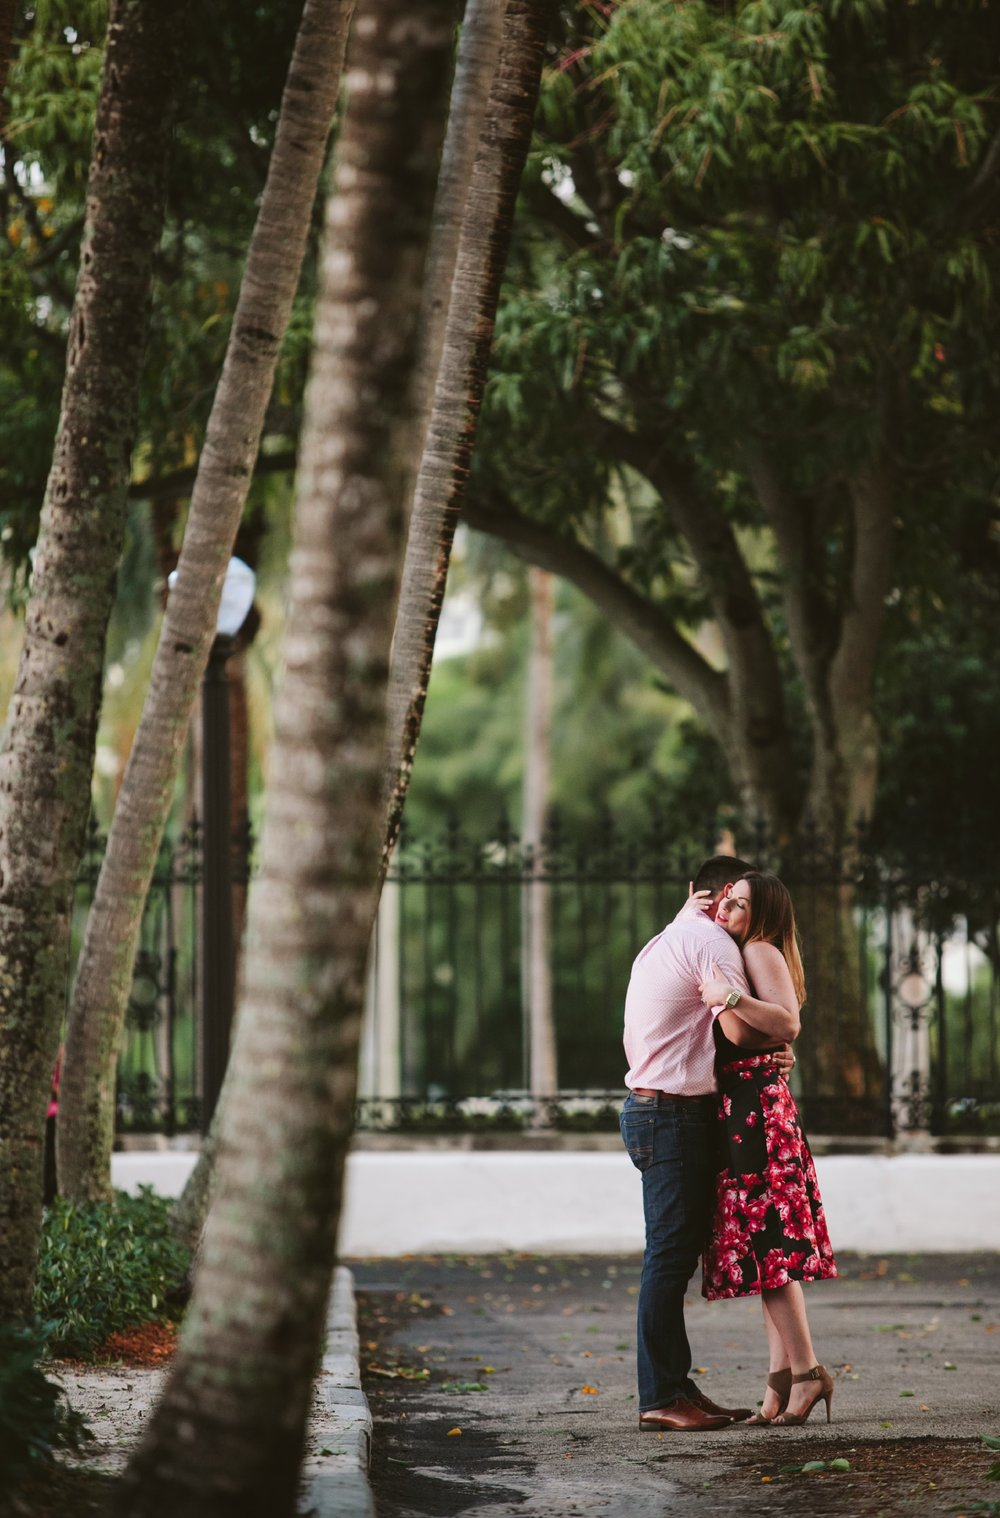 Ida + Danny Surprise Proposal Engagement Shoot at Flagler Museum Palm Beach3.jpg